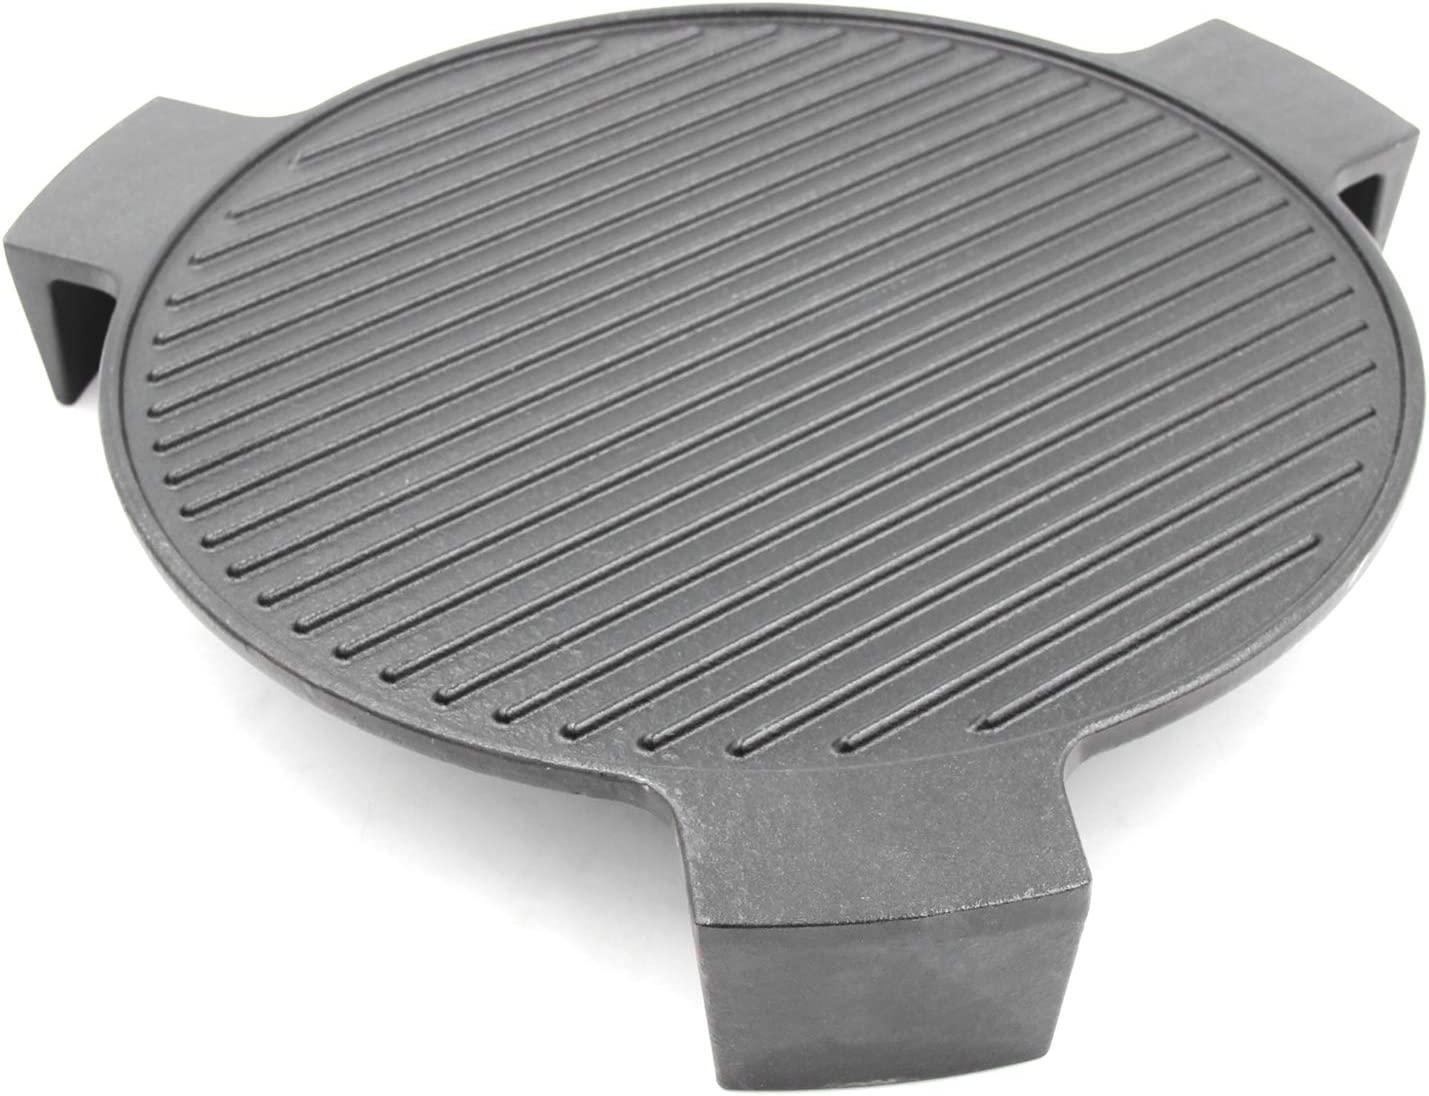 "Hongso 18"" Cast Iron Plate Setter for Large Big Green Egg, BGE Accessories ConvEGGtor, or Other 18"" Dia Indirect Cooking Grill, Grooved Pizza Stone, Smokin' Stone, Heat Deflector with 3 Legs, CBCR-18"